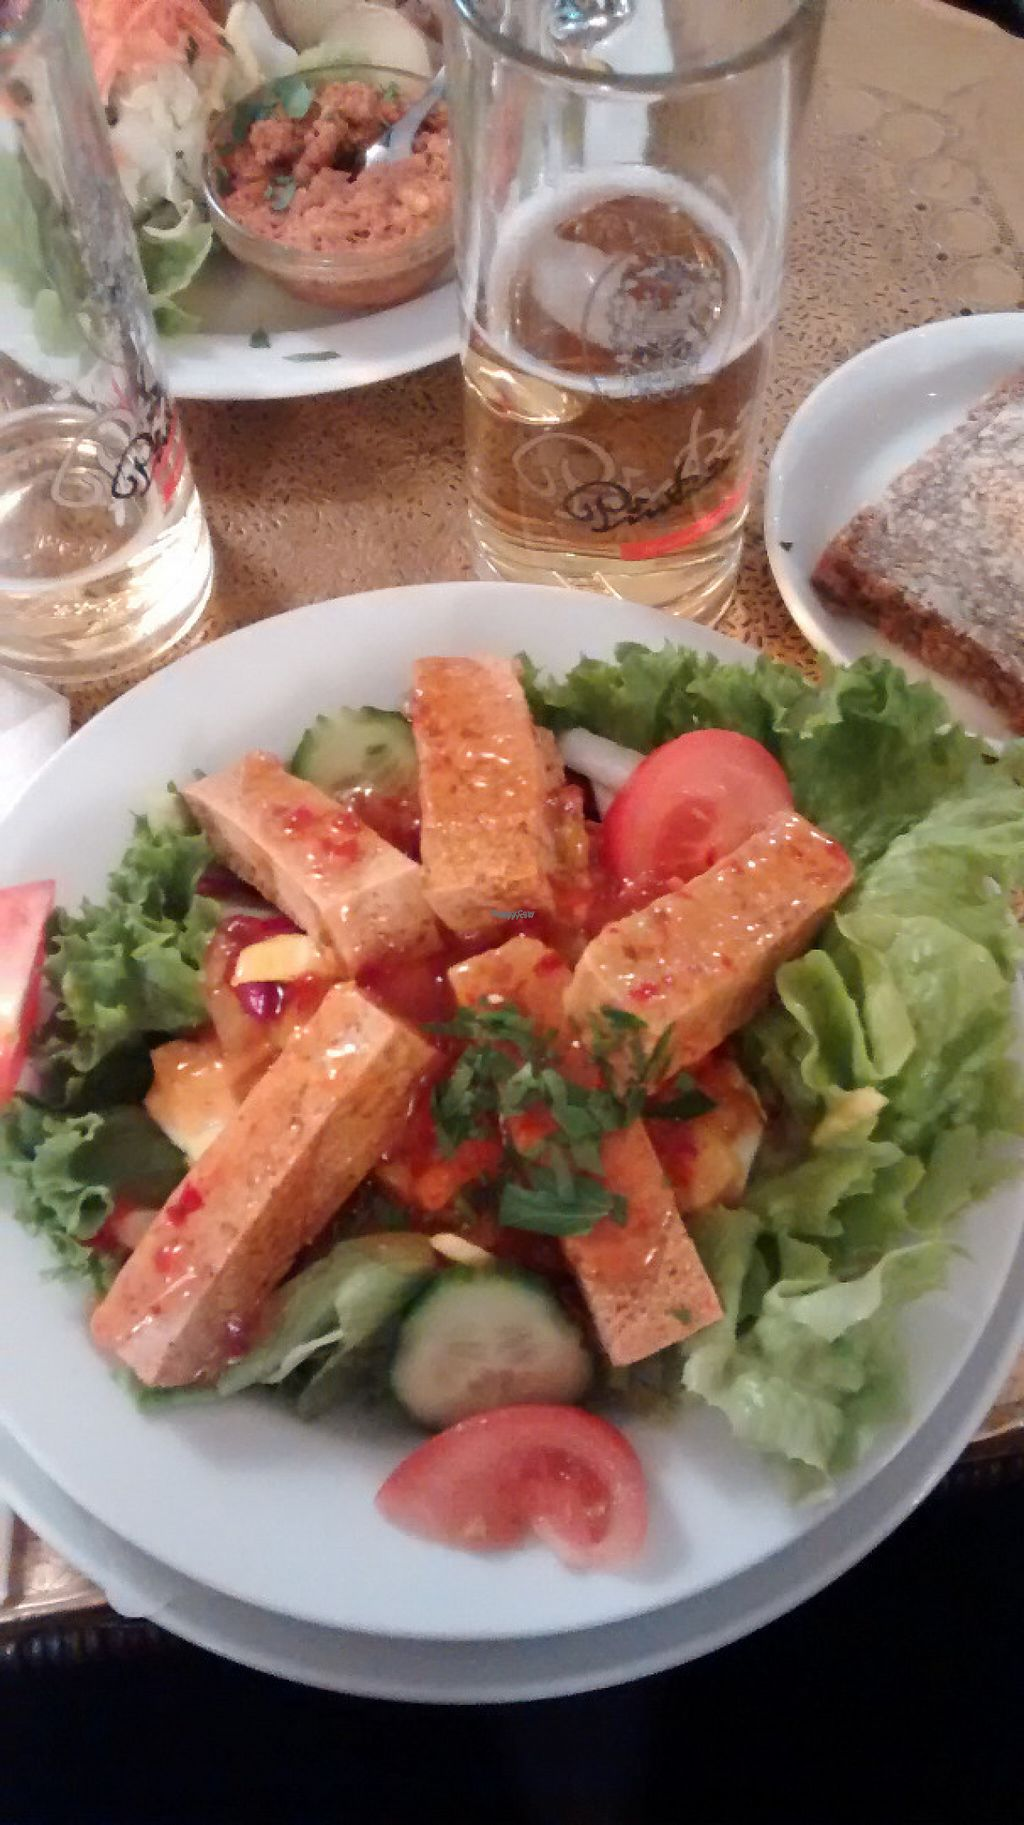 "Photo of Cafe Koppel  by <a href=""/members/profile/BlisterBlue"">BlisterBlue</a> <br/>The vegan tofu salad <br/> November 2, 2016  - <a href='/contact/abuse/image/16259/186114'>Report</a>"